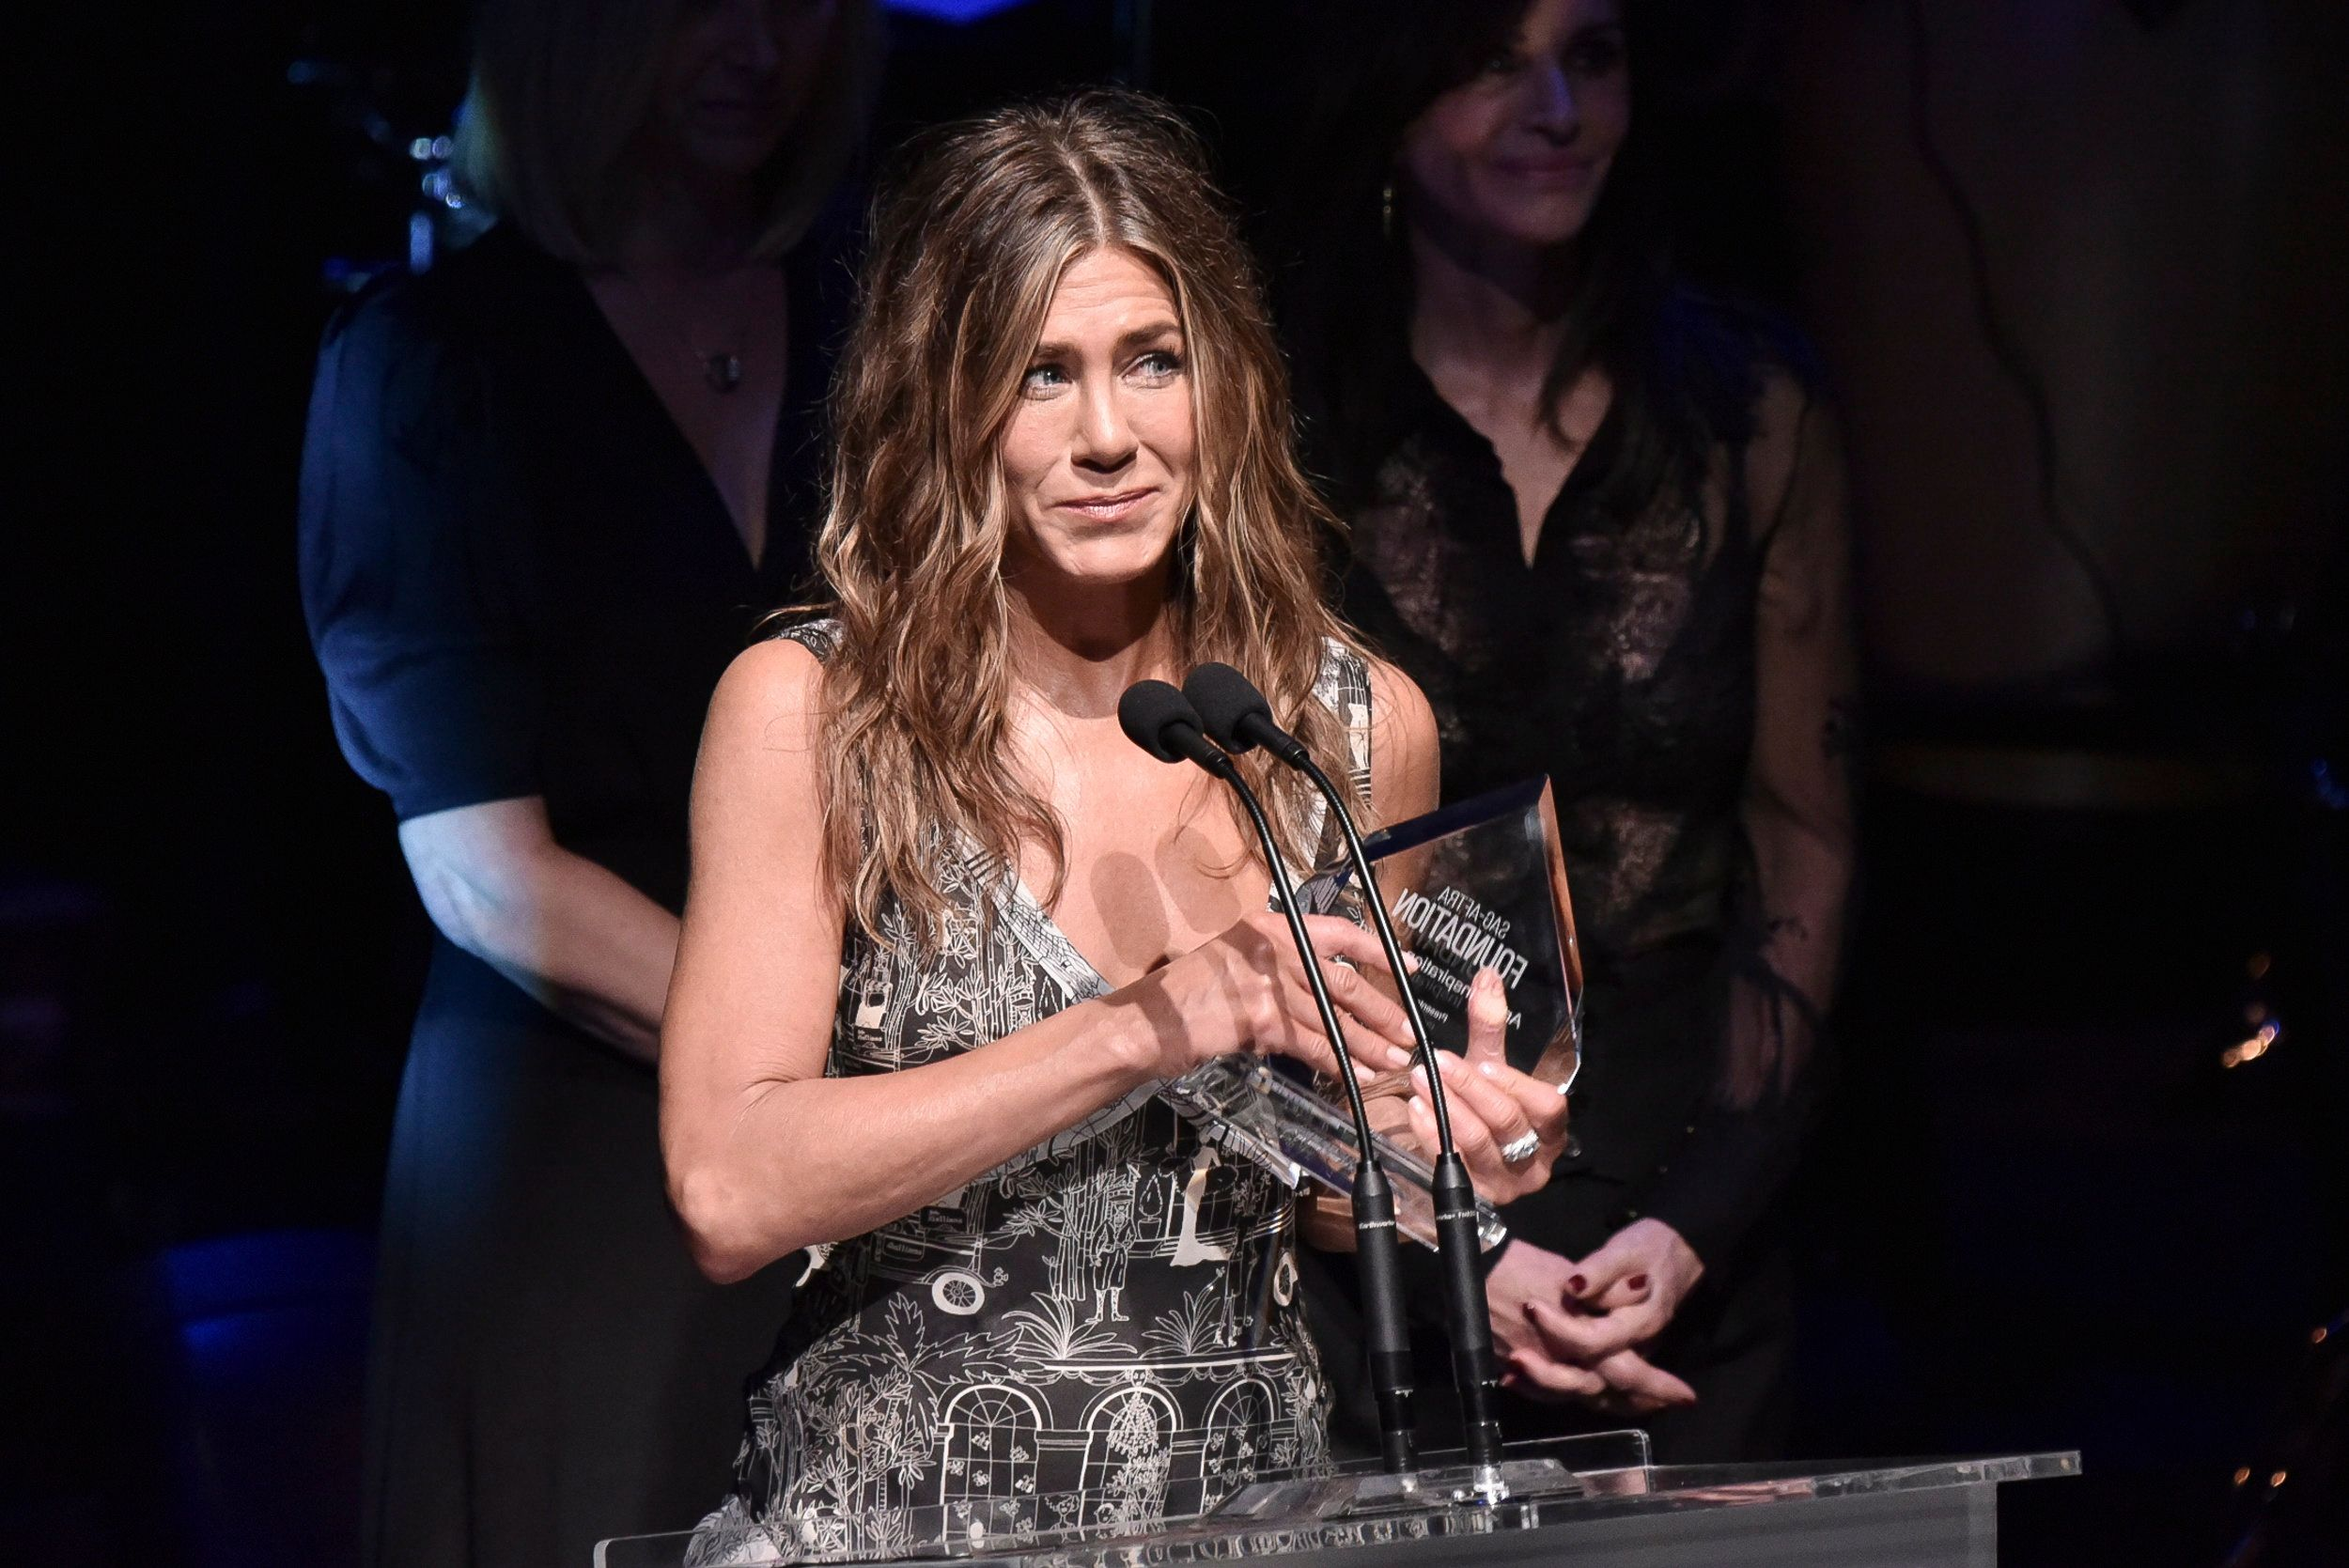 Movie Quiz: Match The Jennifer Aniston Quote To The Correct Movie - Fame10